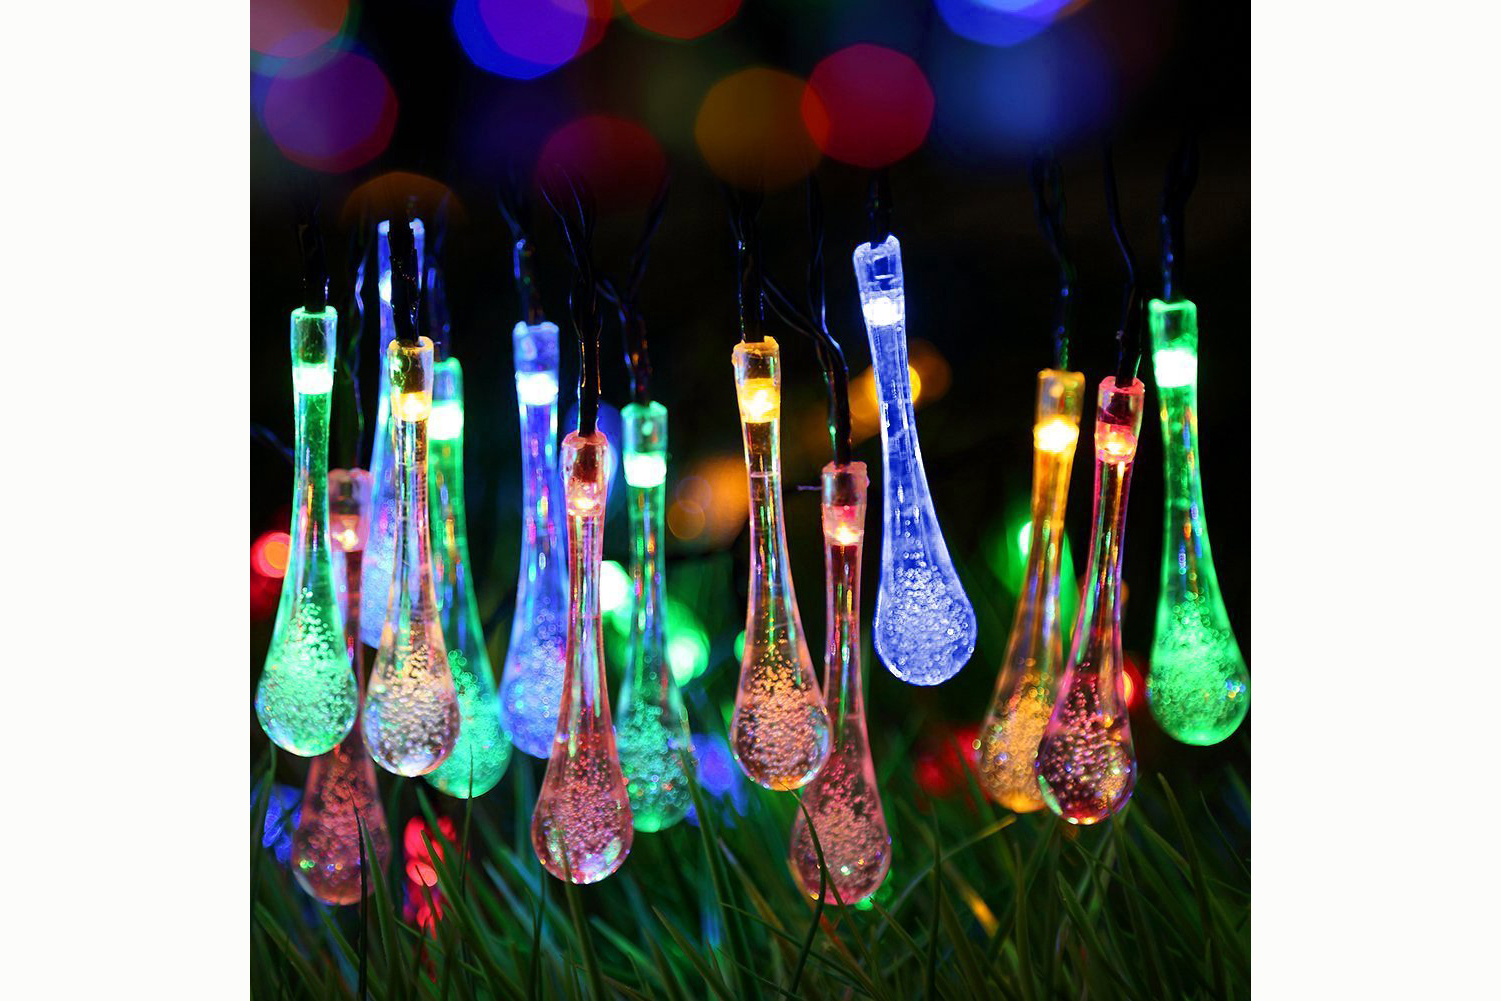 Solar Charged, Water Drop Fairy Lights, 20 Ft, 30 LEDs - 4.5 stars - $14 (Prime)